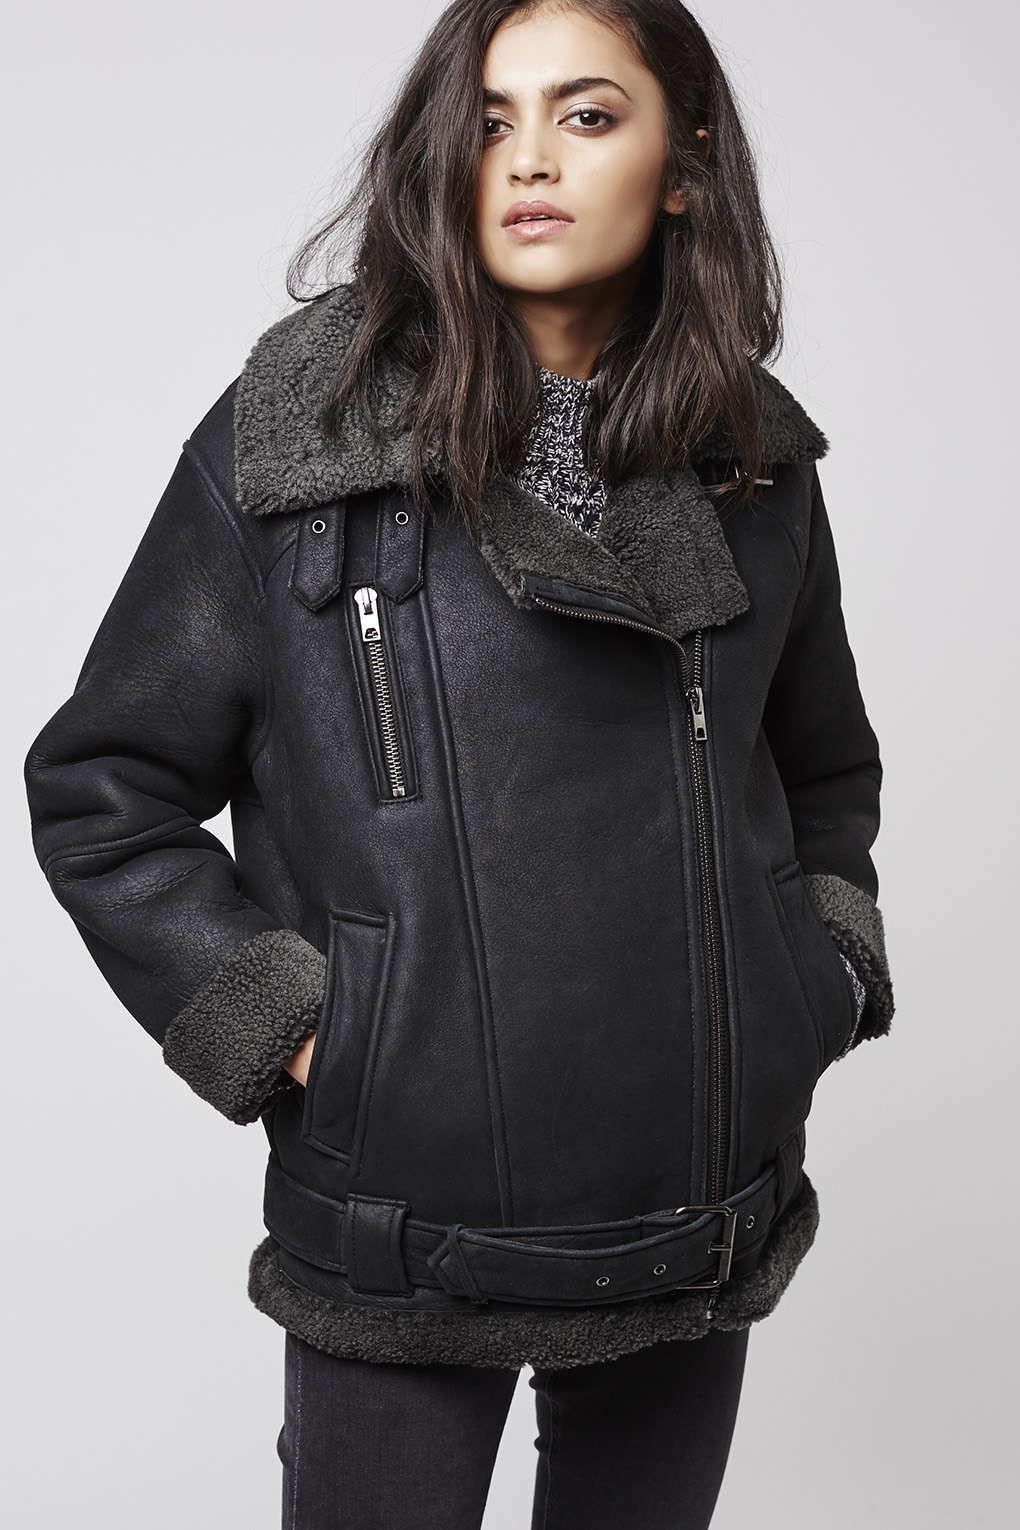 This Premium Shearling Biker Jacket is perfect for